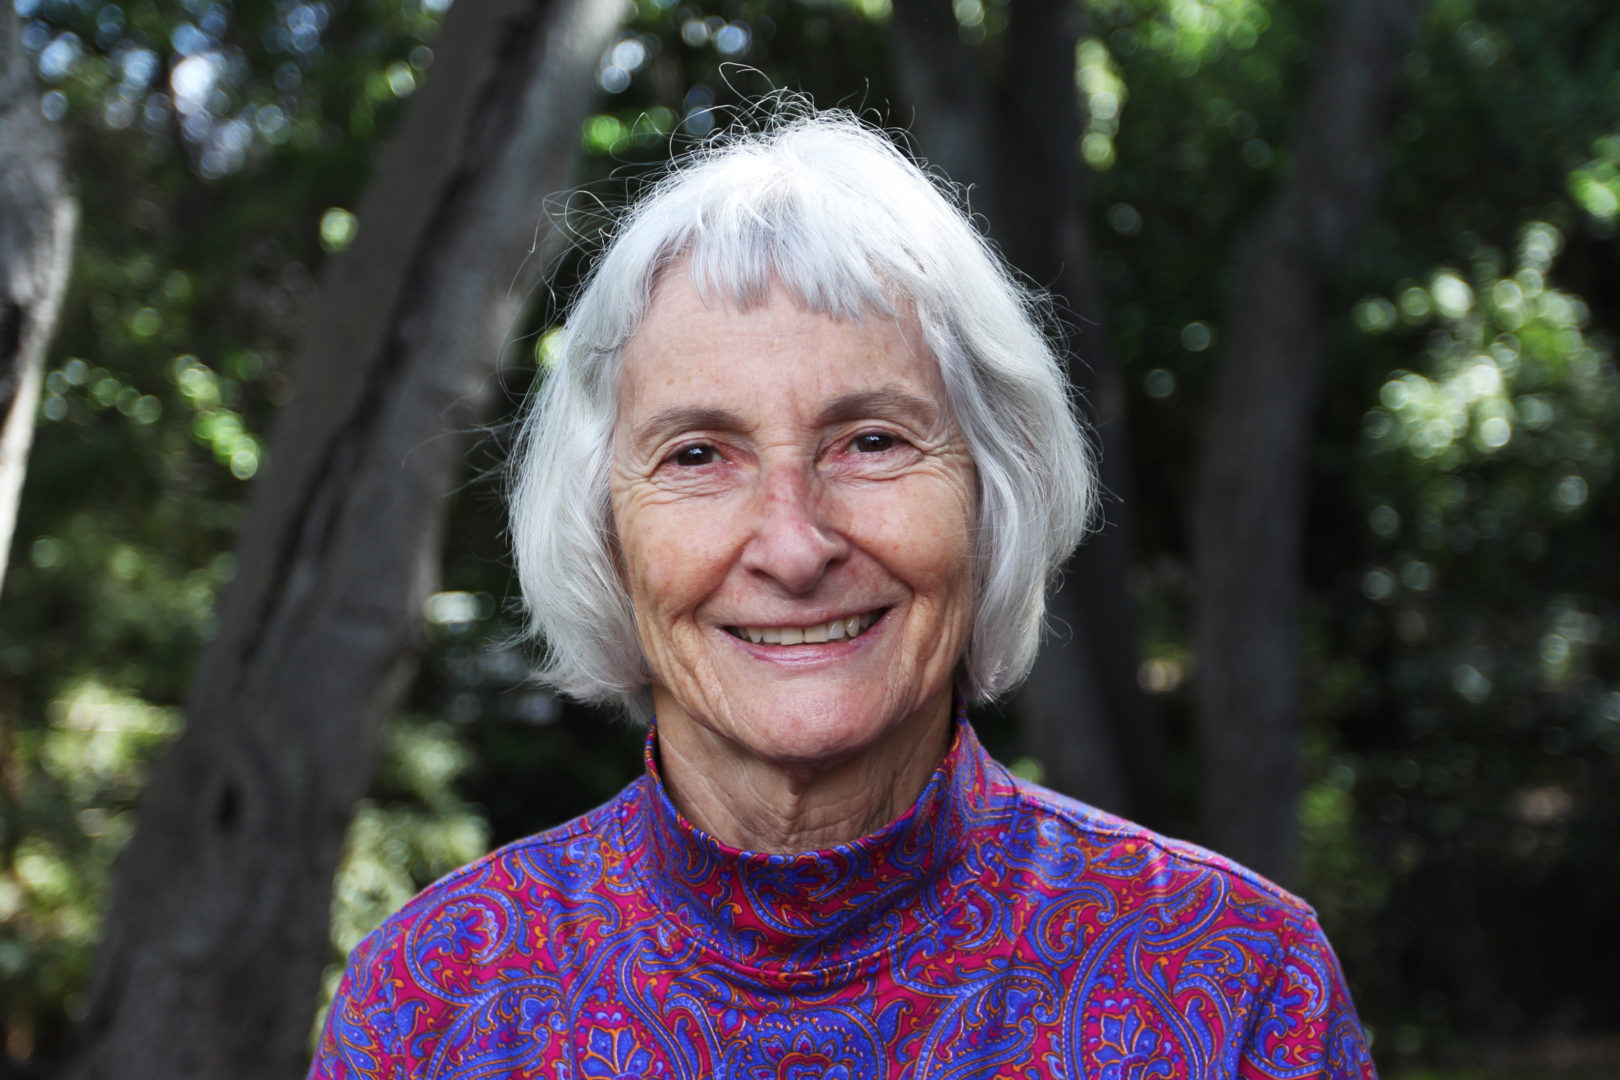 Dexter at her home in Los Altos, California. While she is retired from teaching, Dexter remains active in the local community. Photo by Mary Lide Parker